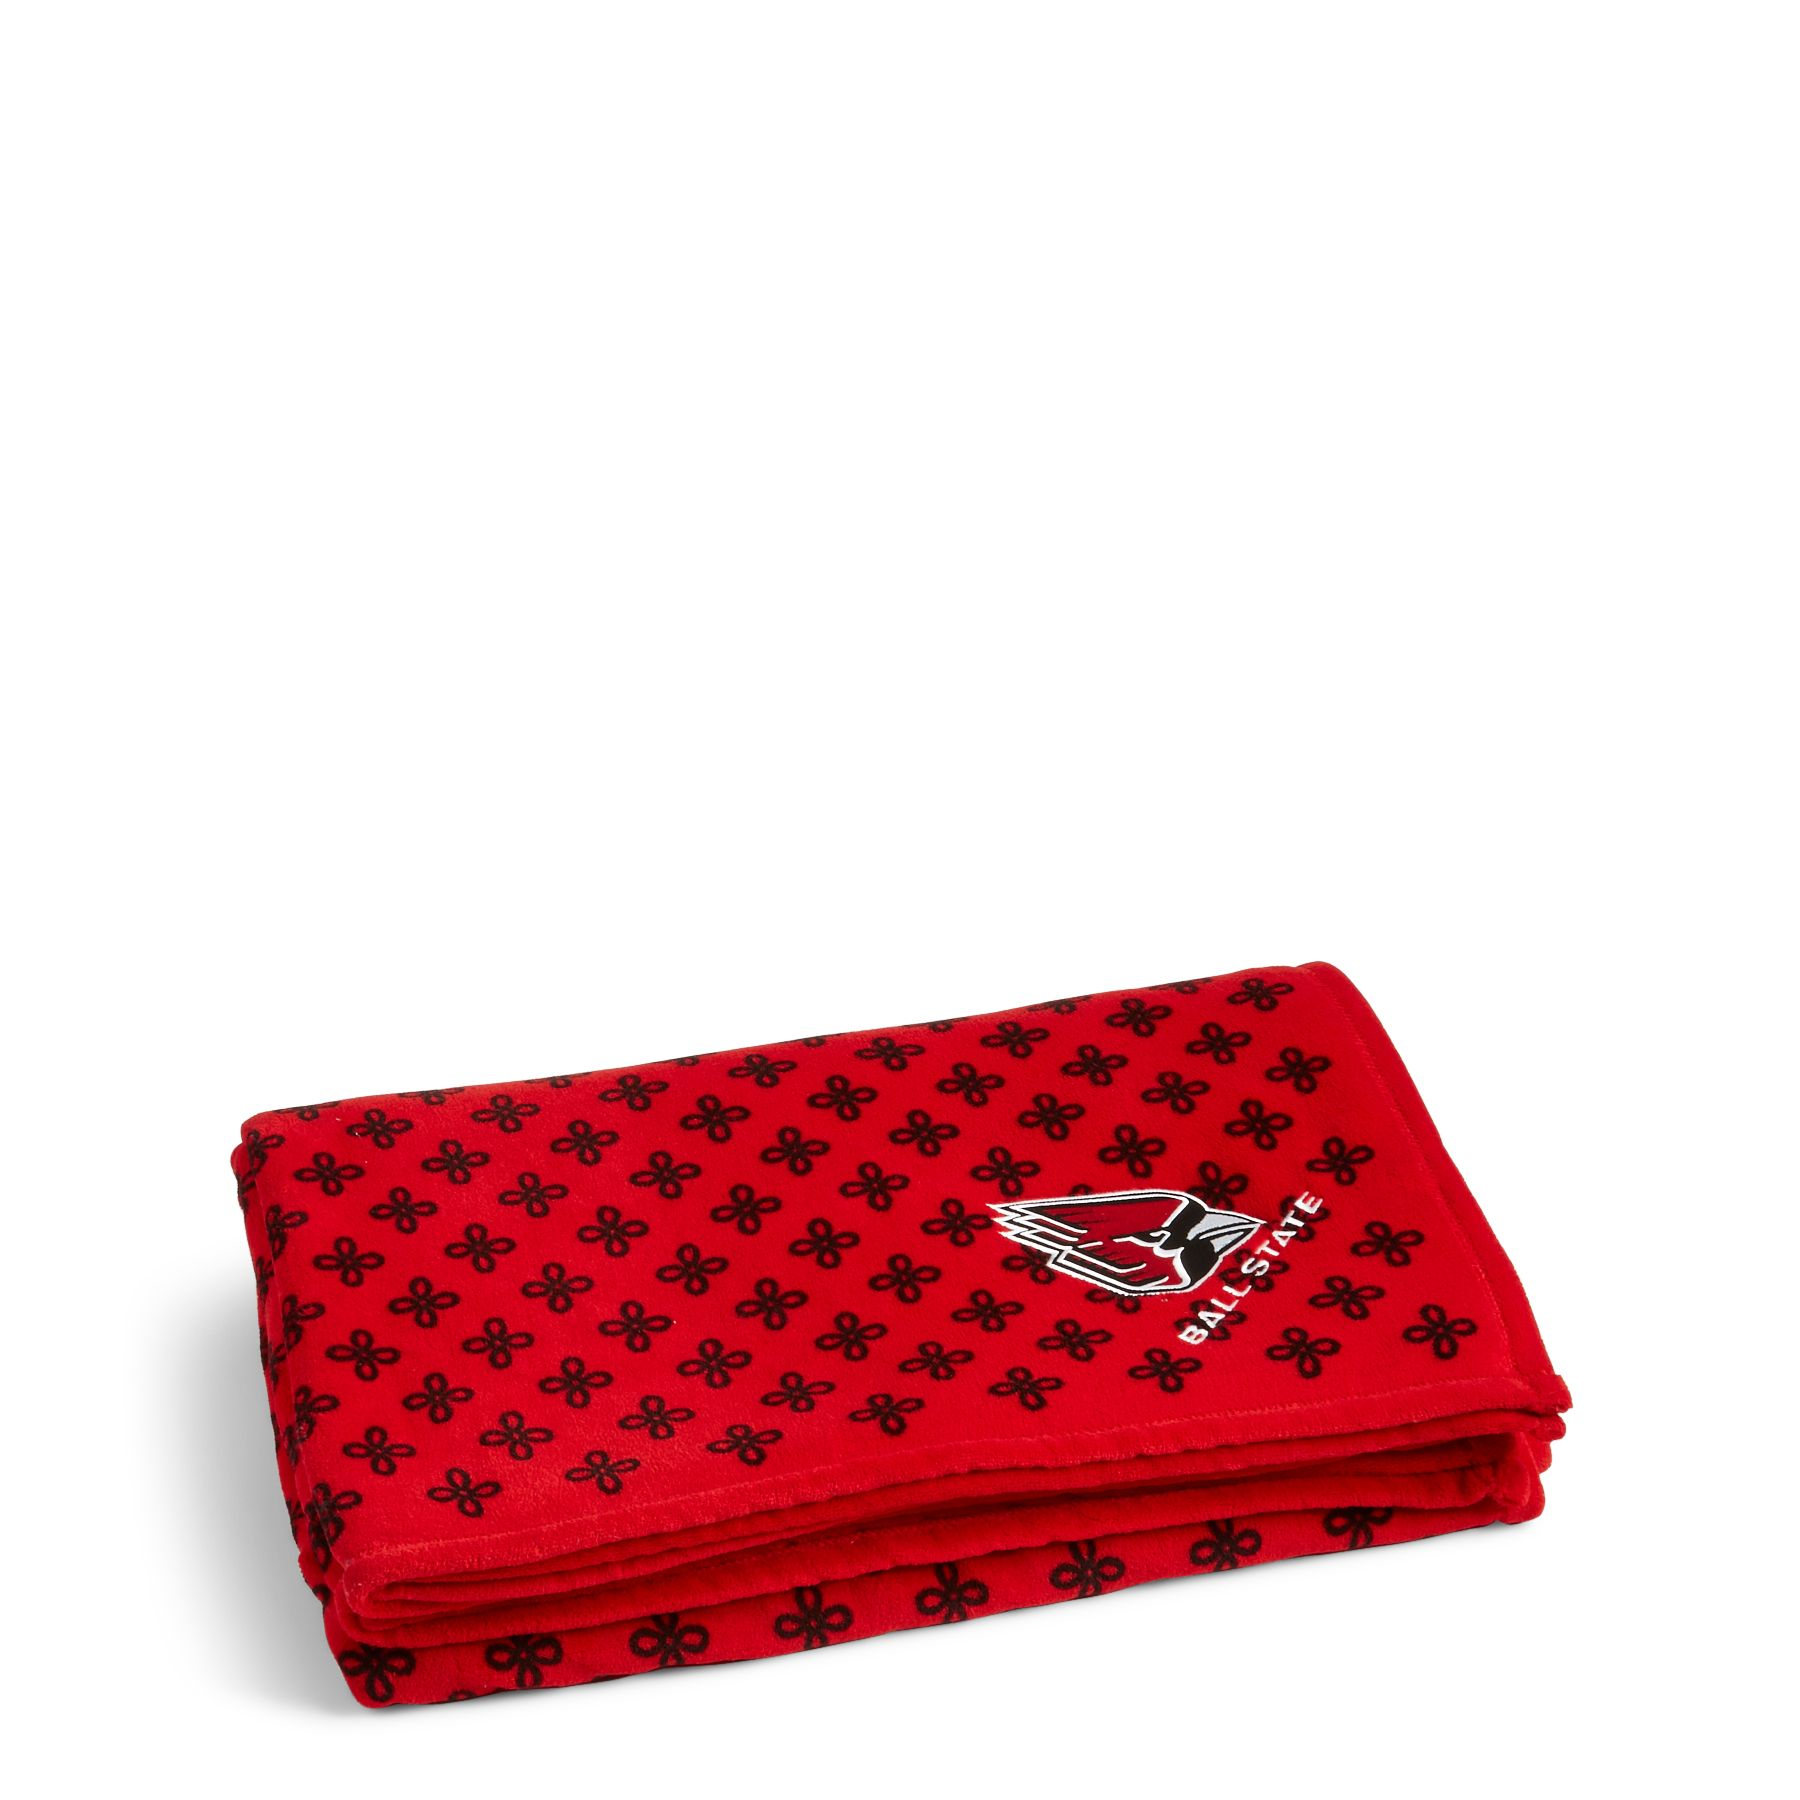 Vera Bradley Xl Throw Blanket In Red Black Mini Concerto